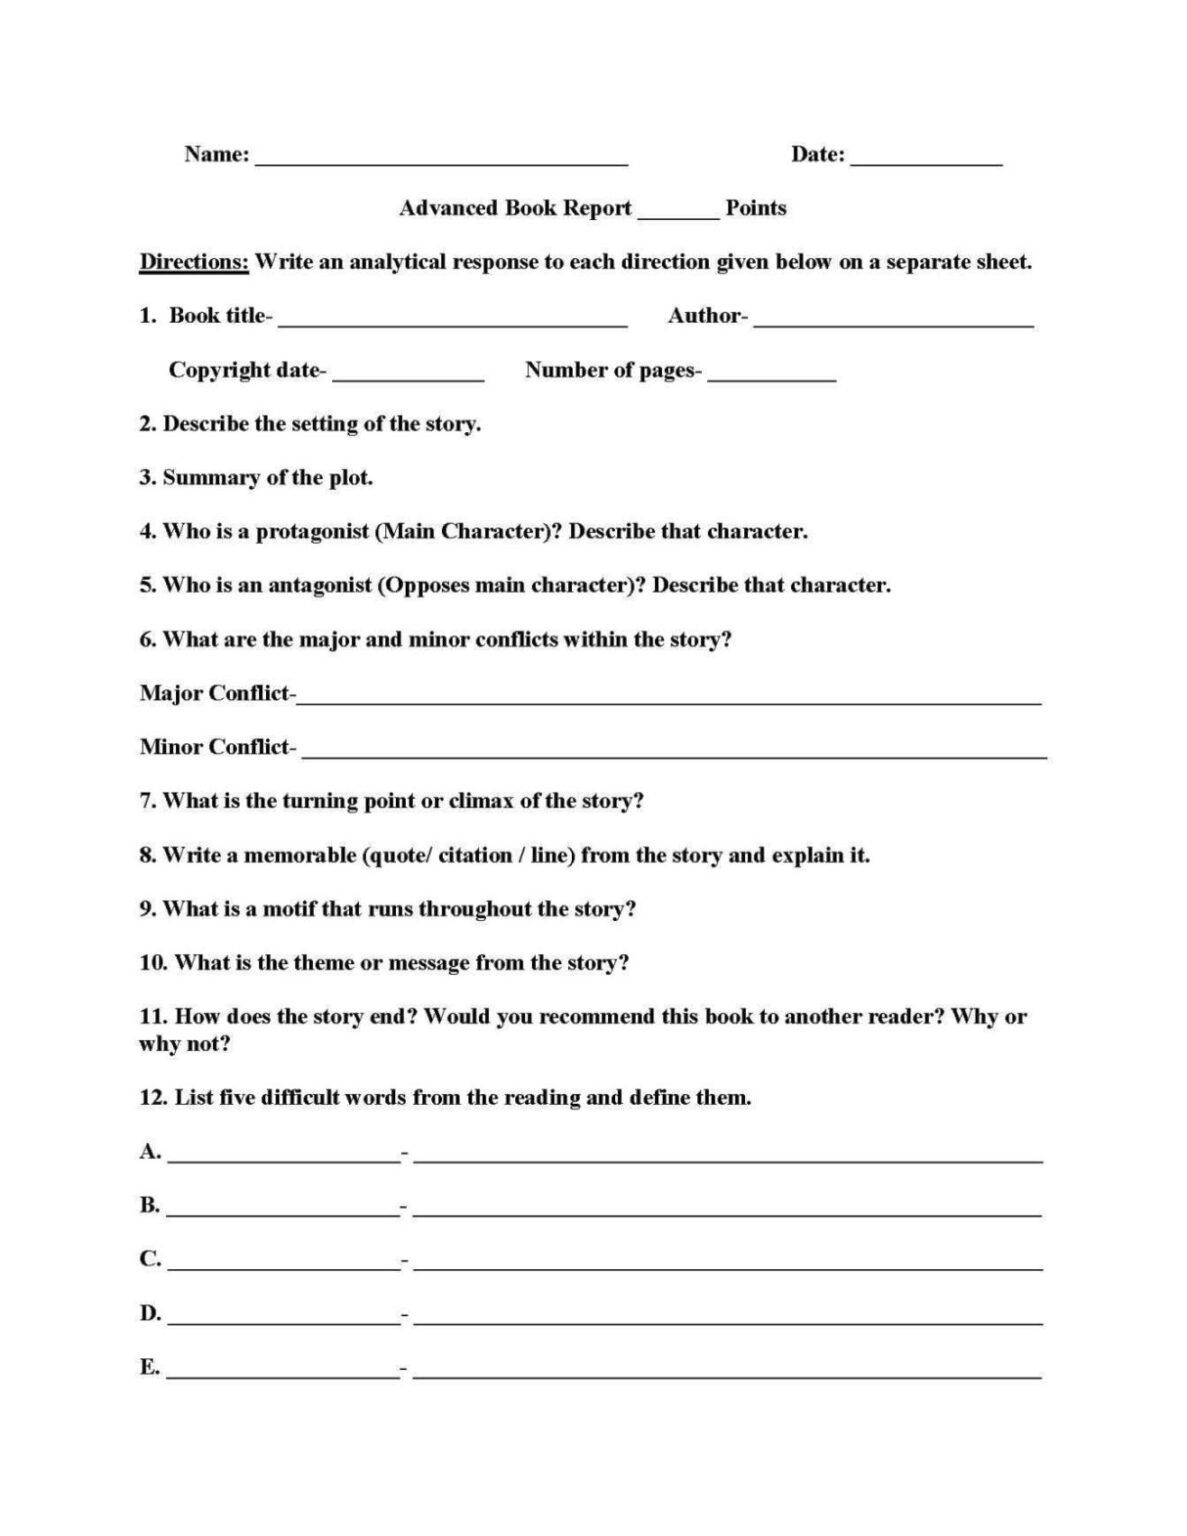 Worksheet 4th Grade Report Printable Worksheets And Inside Book Report Template 4th Grade In 2020 Book Report Templates Book Report Biography Book Report Template